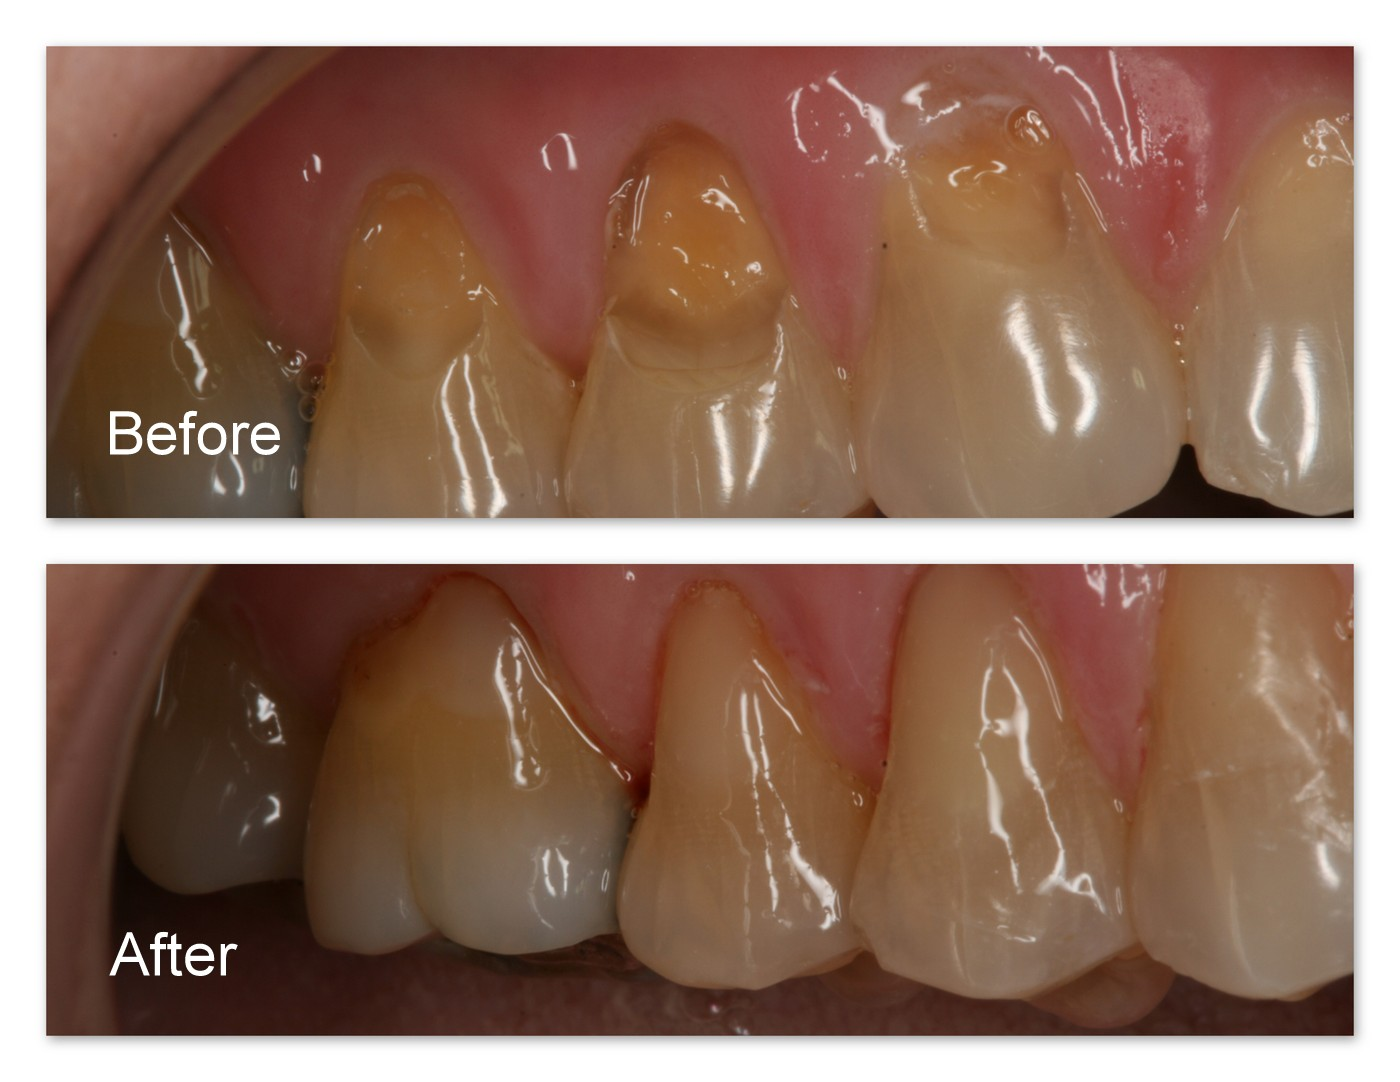 Before- Extremely worn/eroded teeth. After- Immediately after restoration by Jack Hosner of Portage, MI.